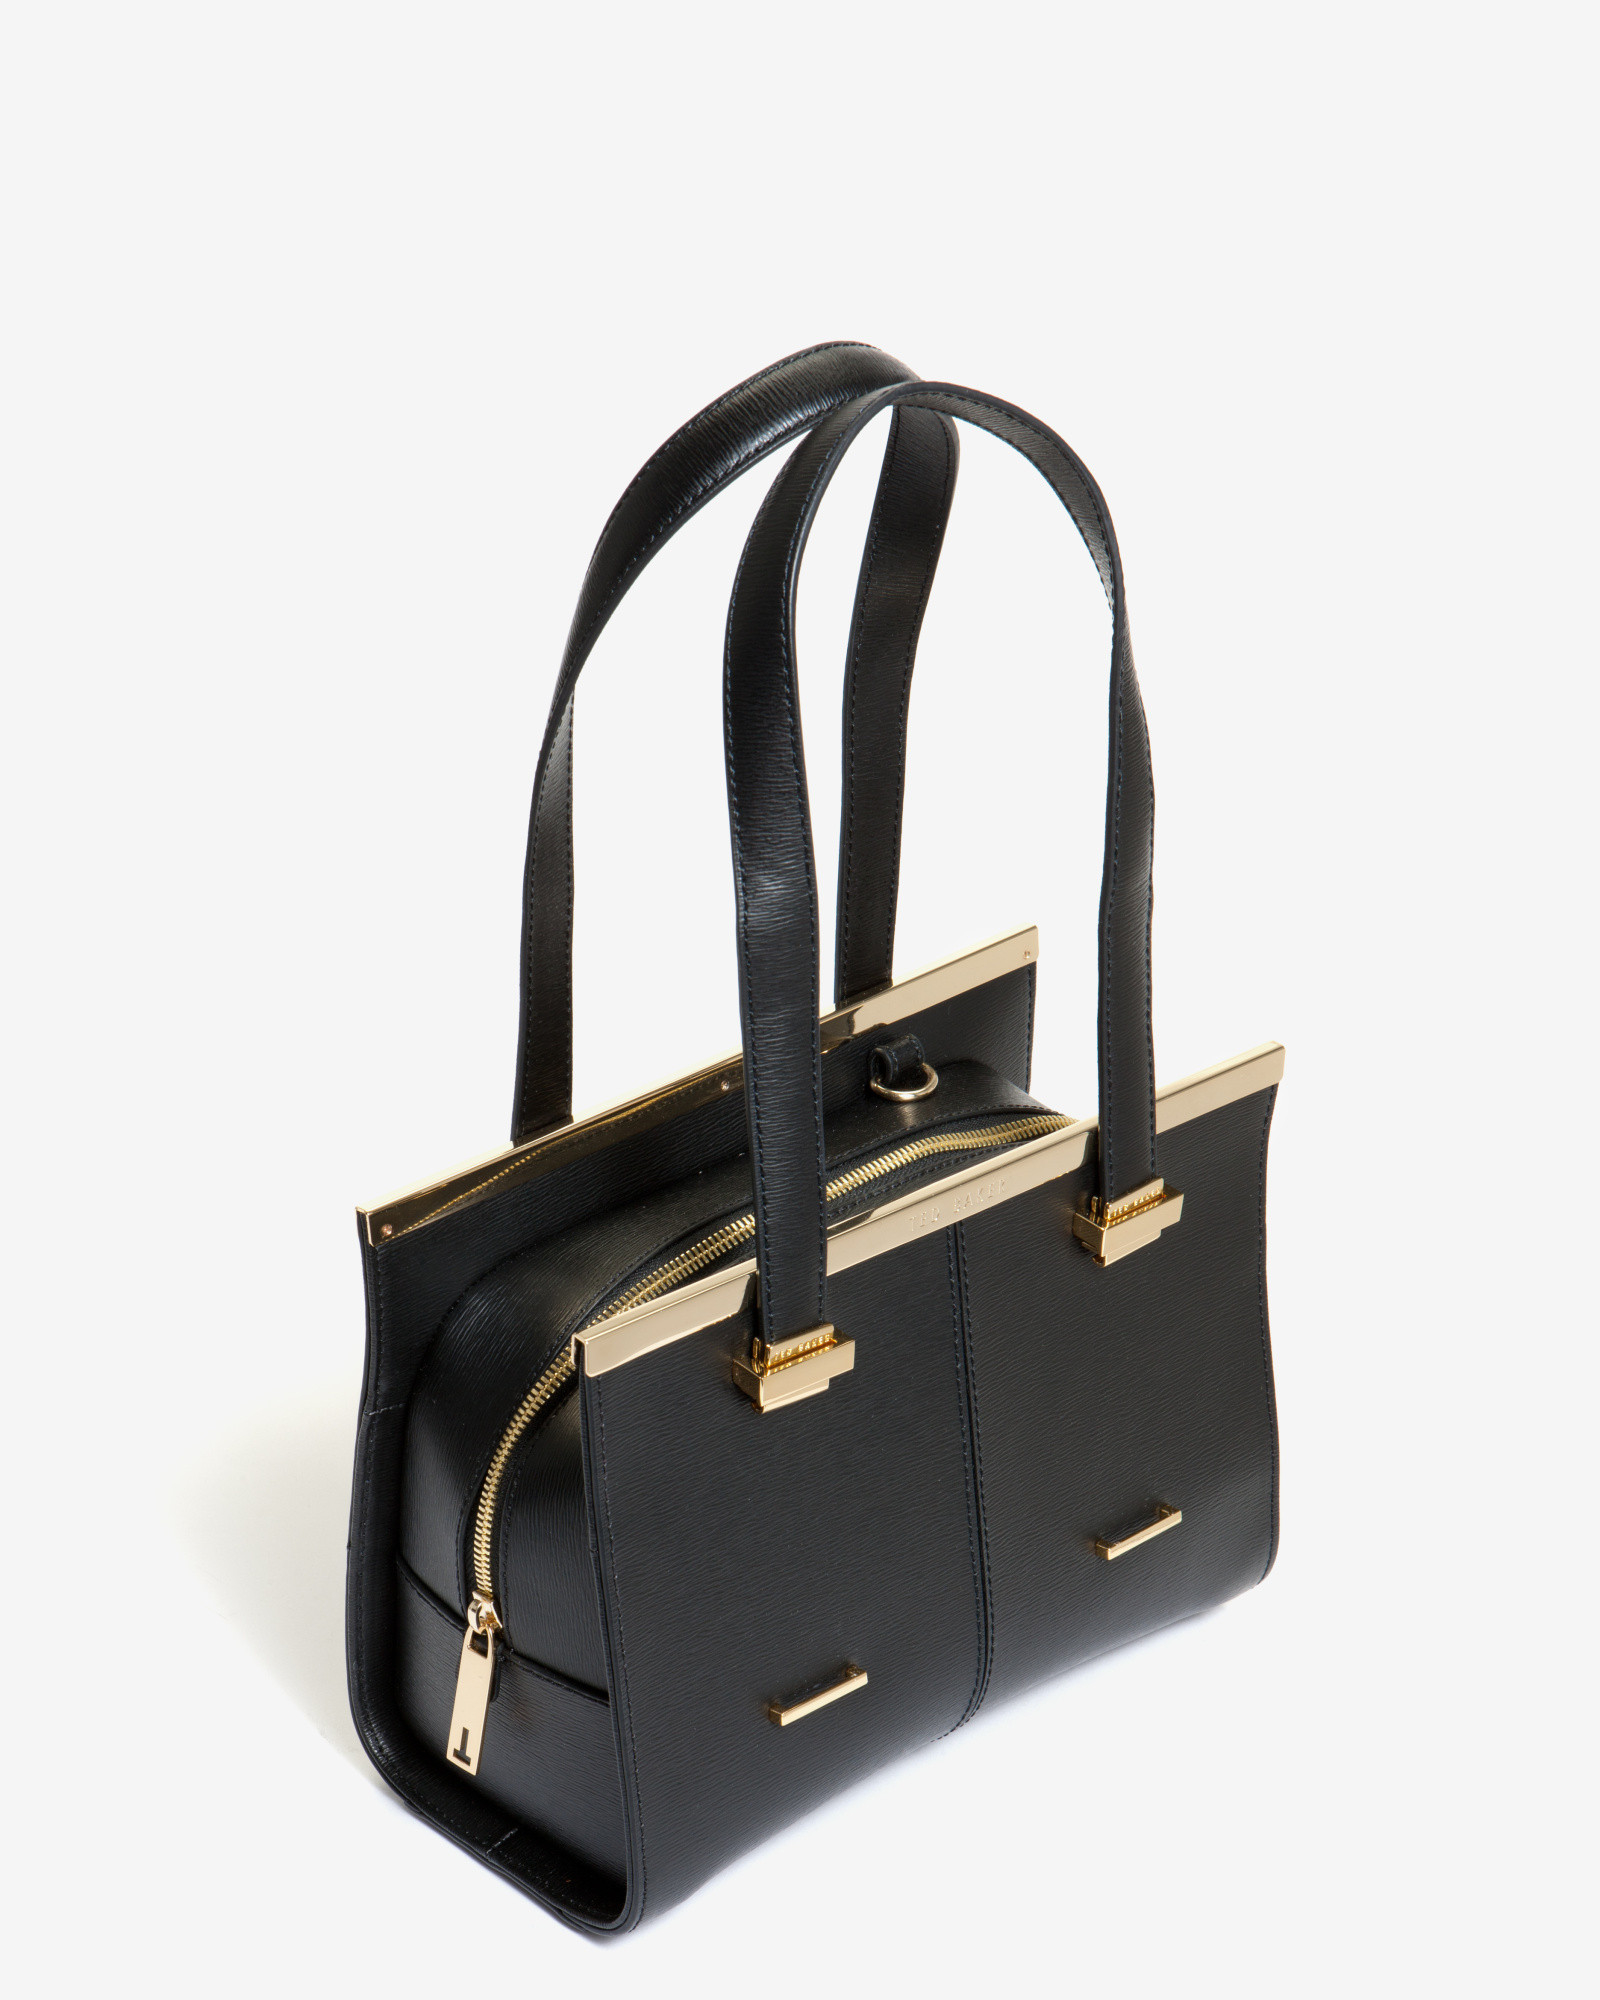 aecae6ea6019d Lyst - Ted Baker Small Crosshatch Leather Tote Bag in Black